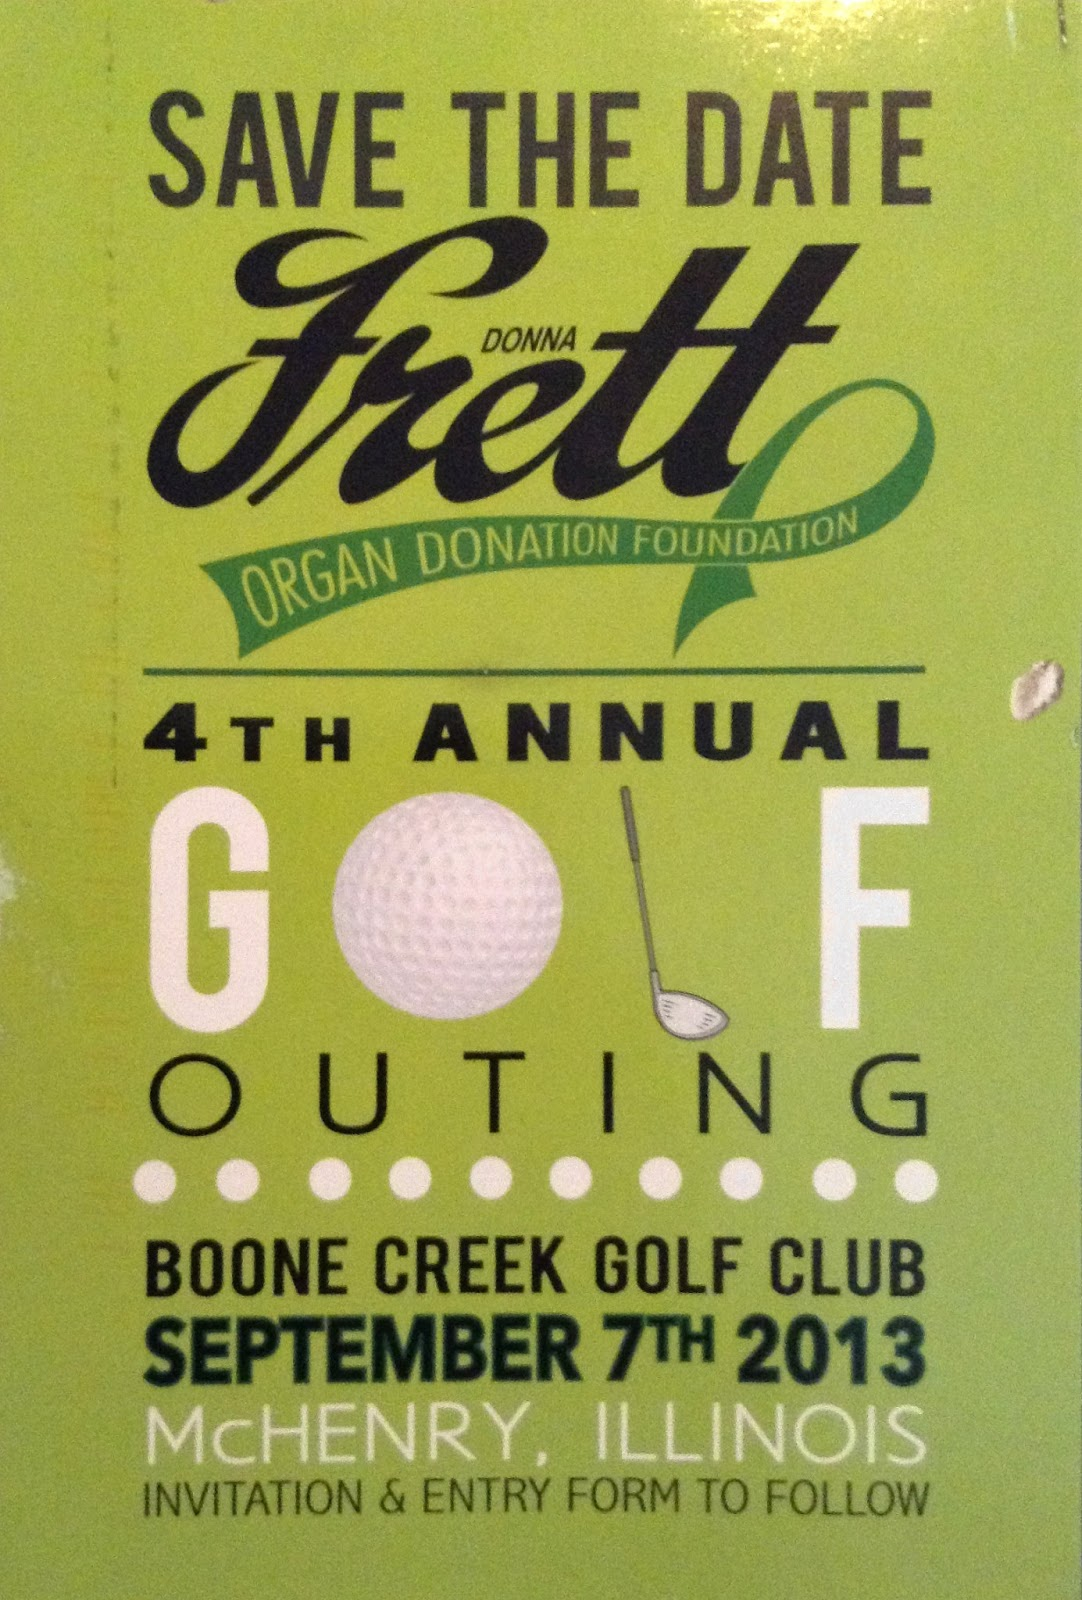 golf outing flyer posters pinterest golf and graphic projects. Black Bedroom Furniture Sets. Home Design Ideas